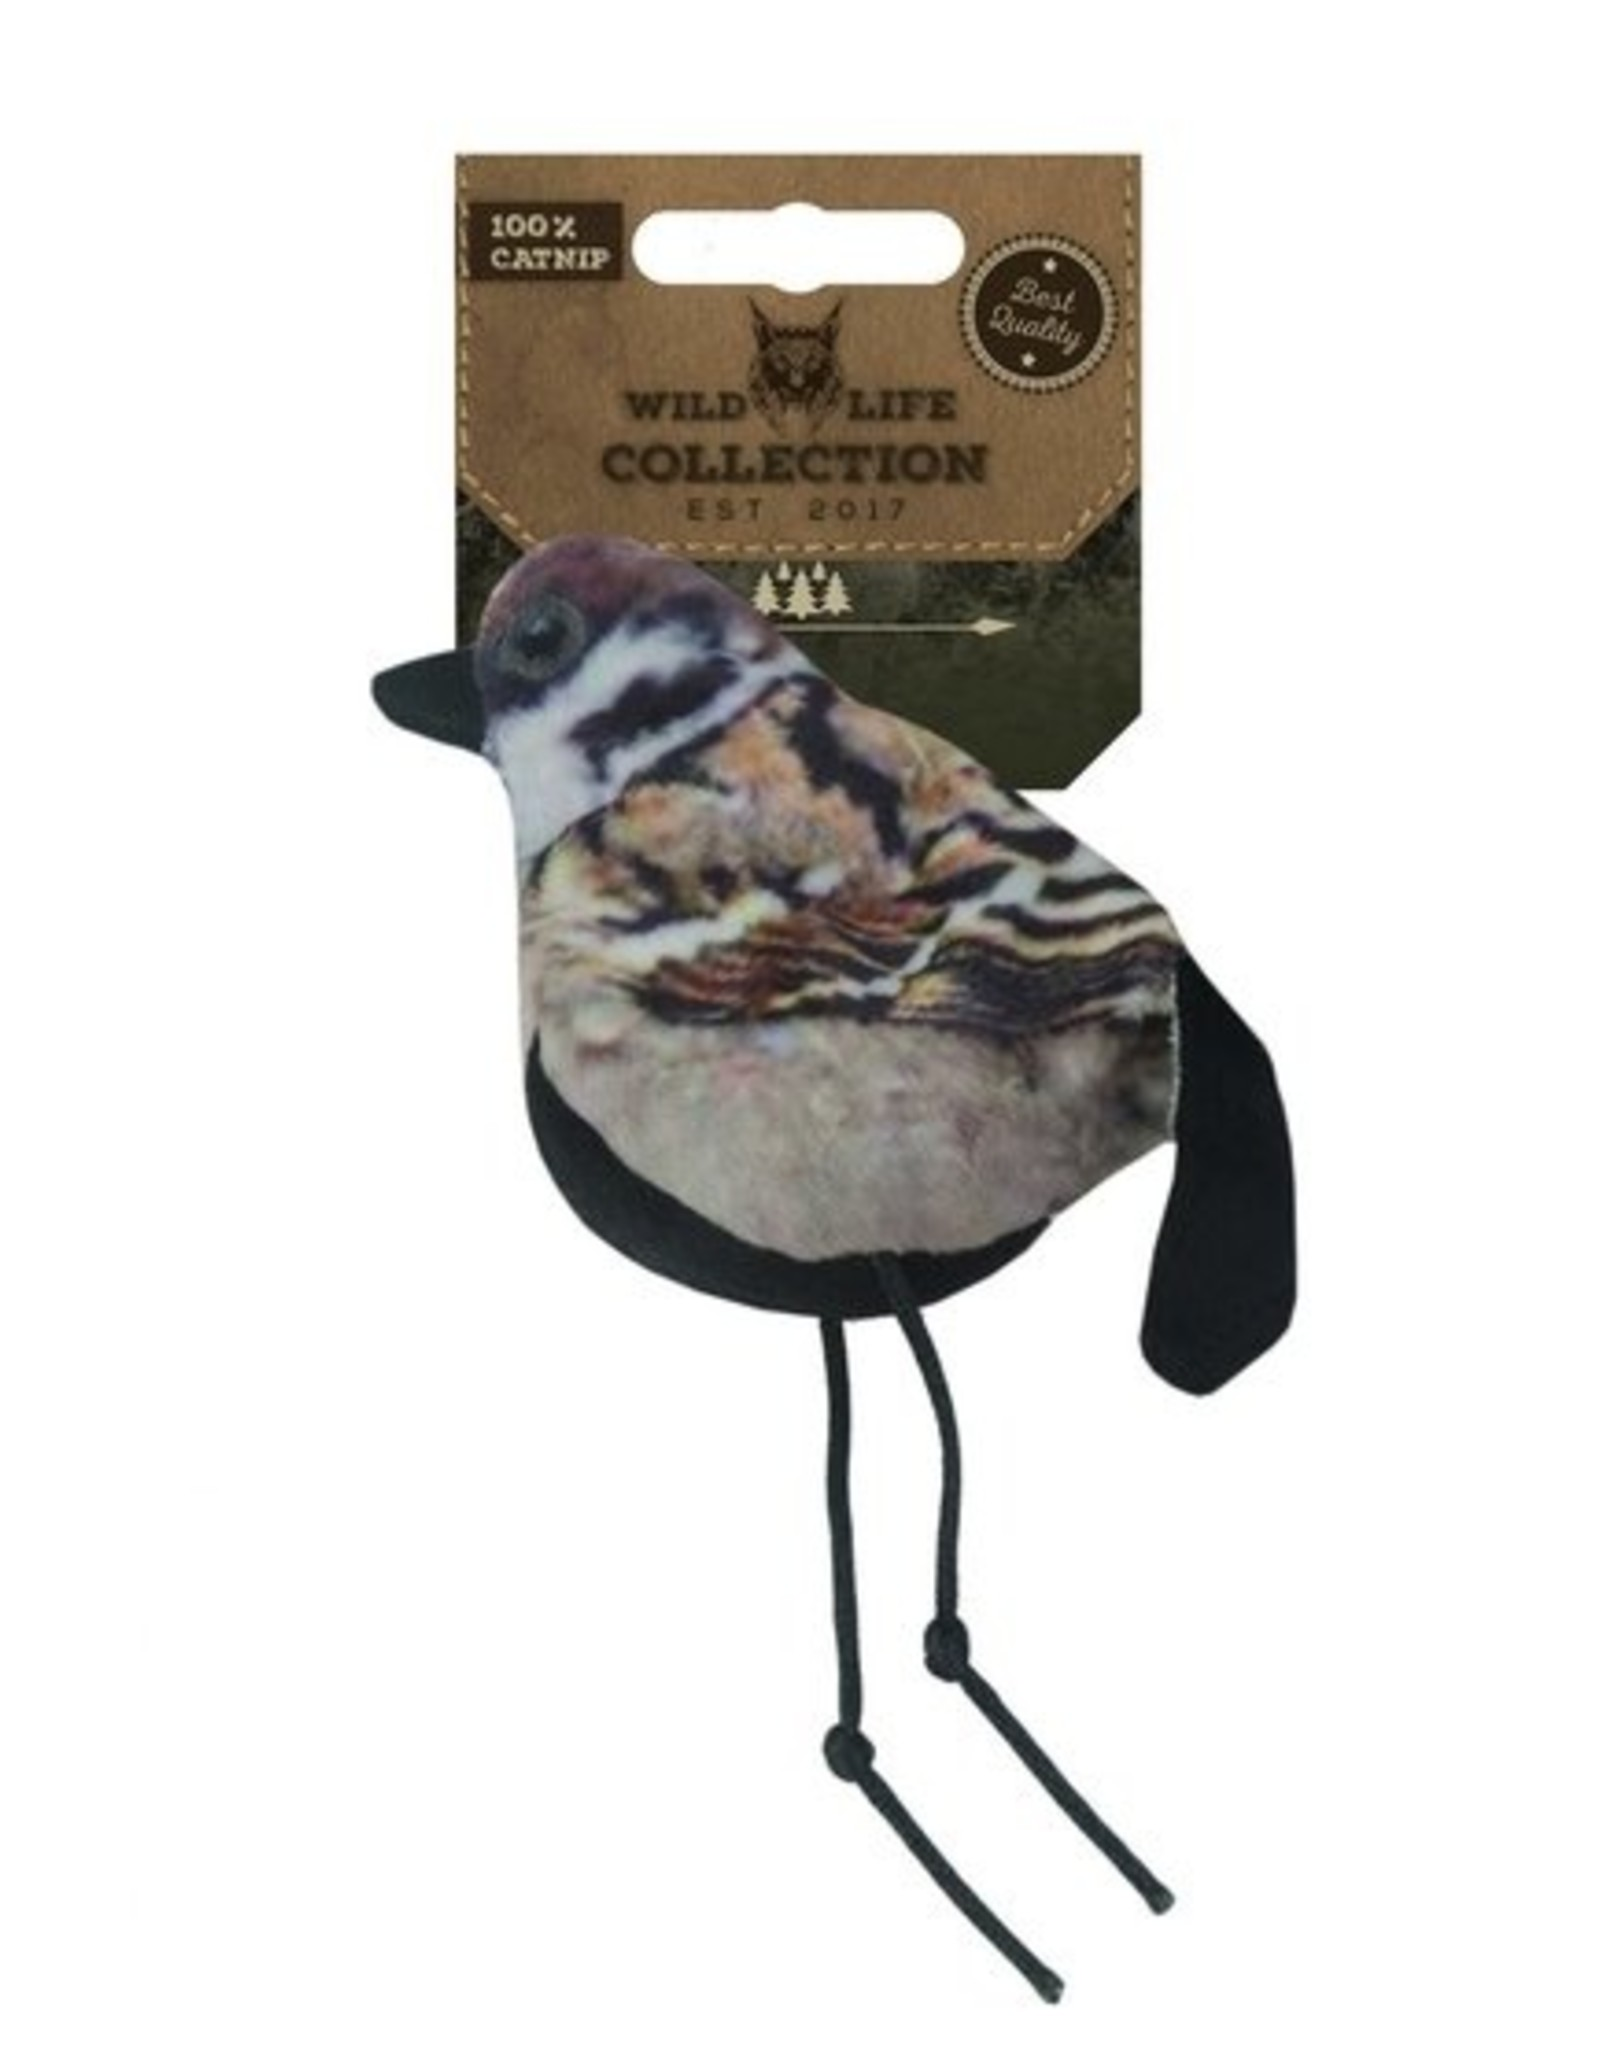 Wild Life Collection - Mus (sparrow)